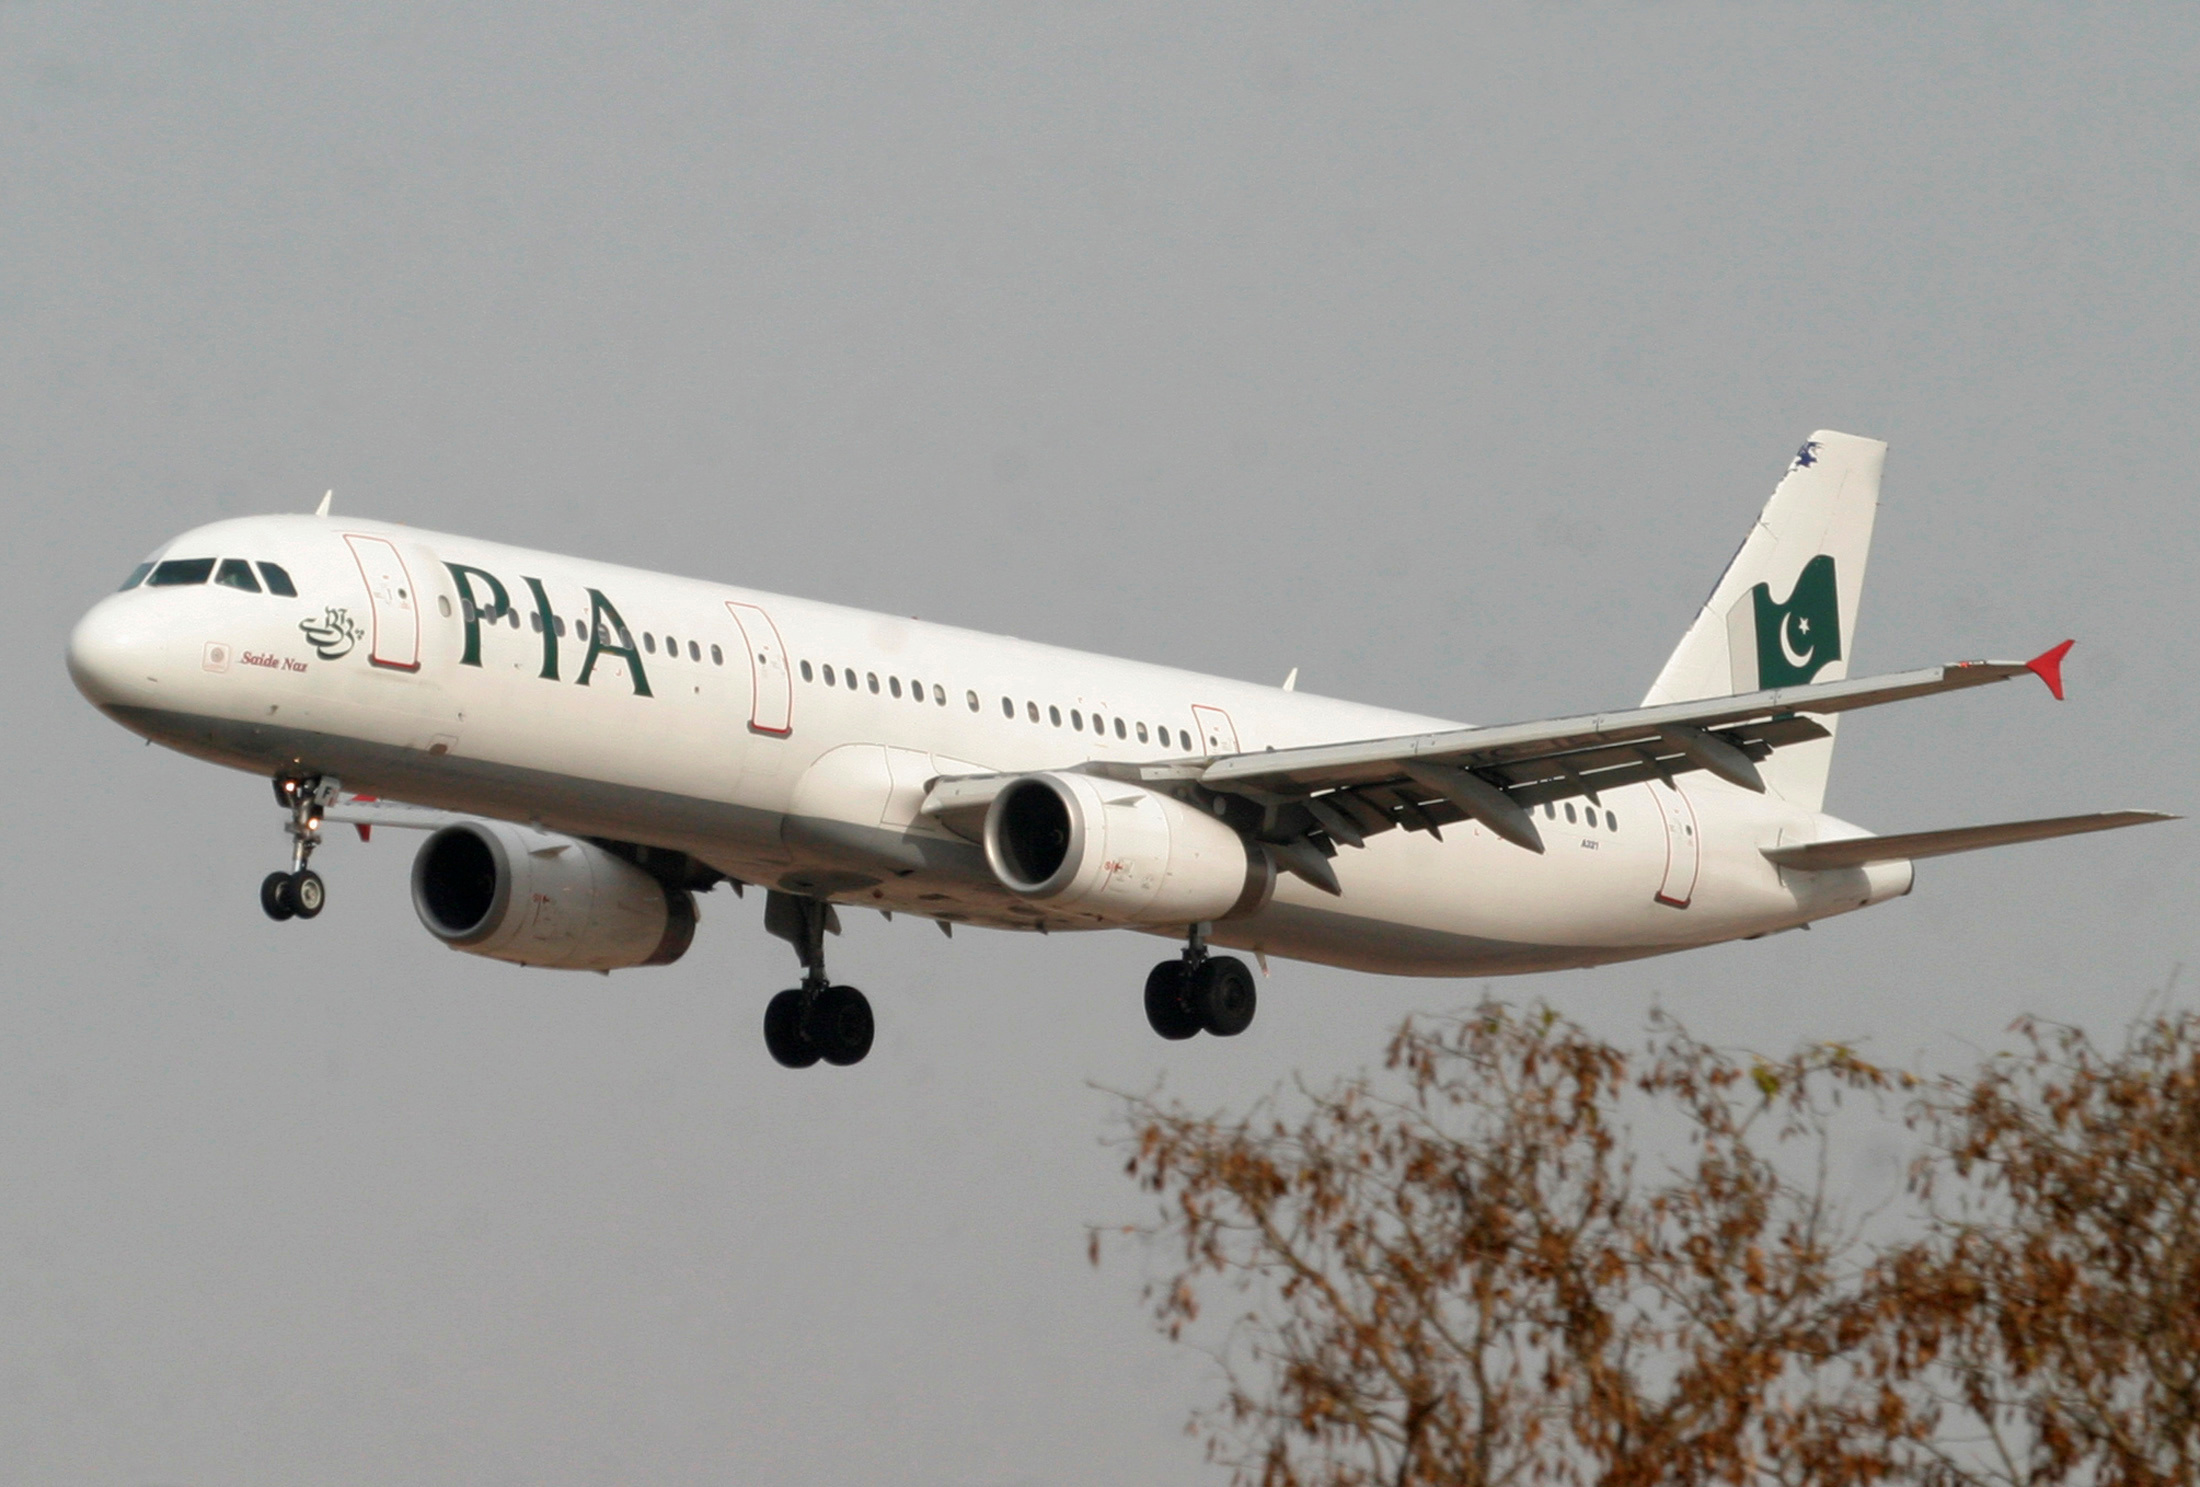 FILE PHOTO: A Pakistan International Airlines (PIA) plane prepares to land at Islamabad airport in Islamabad February 24, 2007. REUTERS/Faisal Mahmood/File Photo